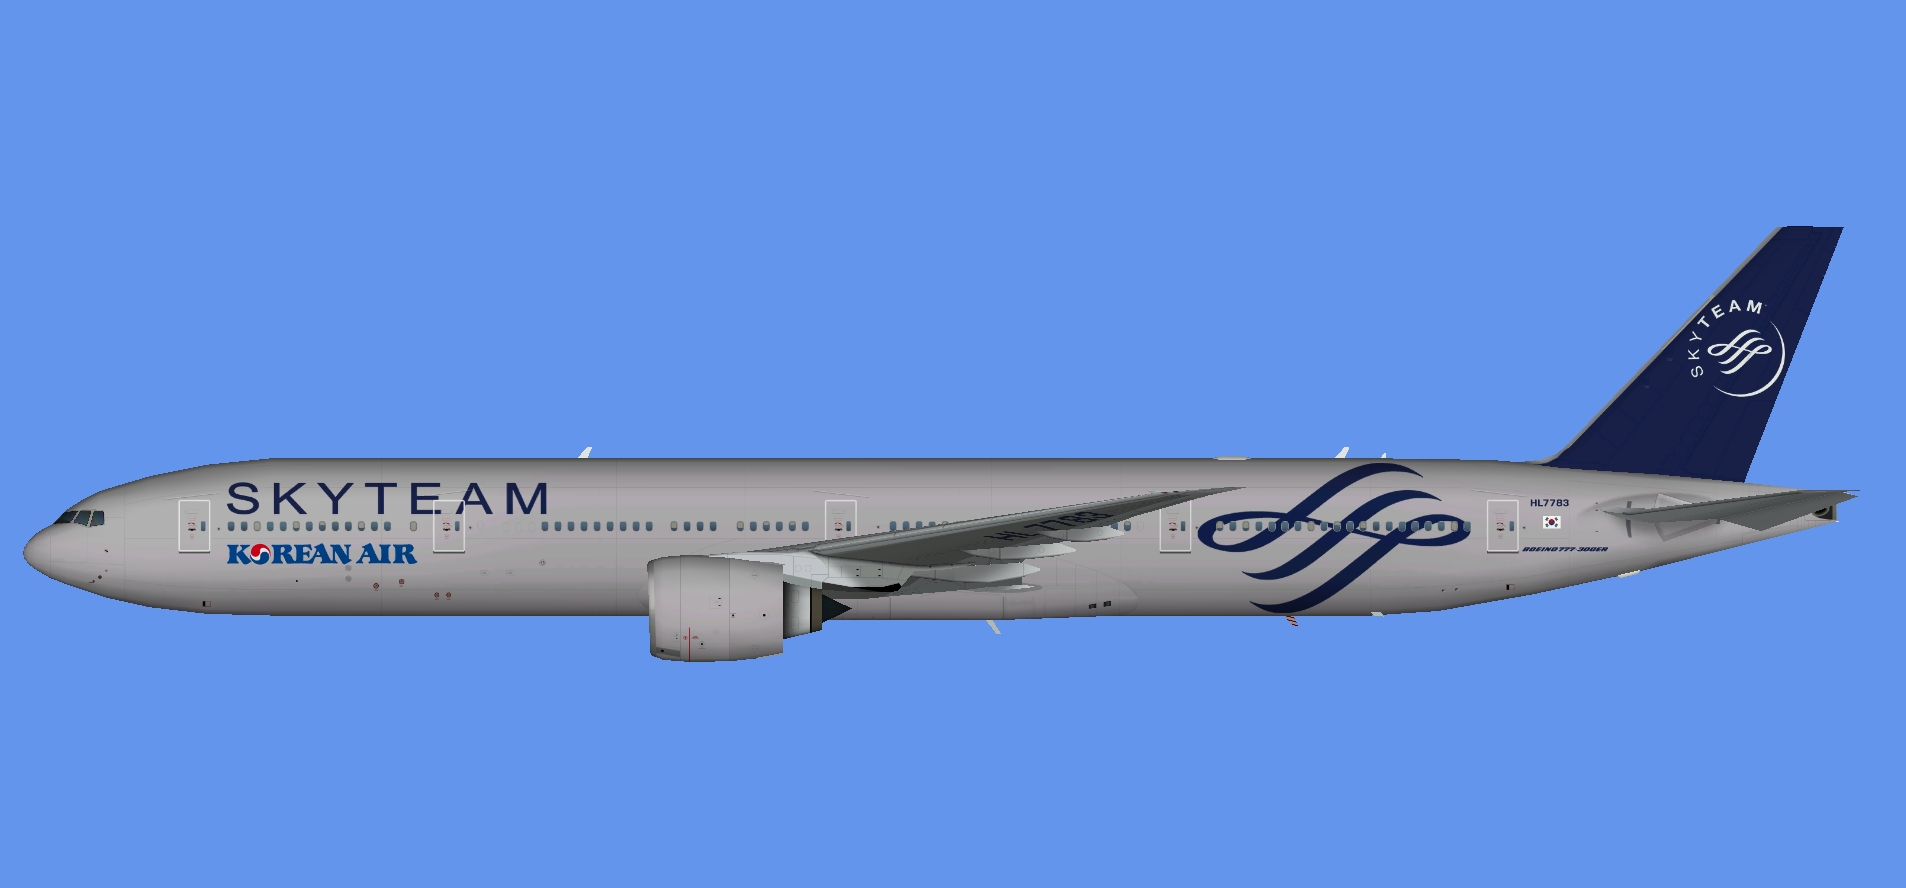 Korean Air 777-300ER Skyteam (TFS)